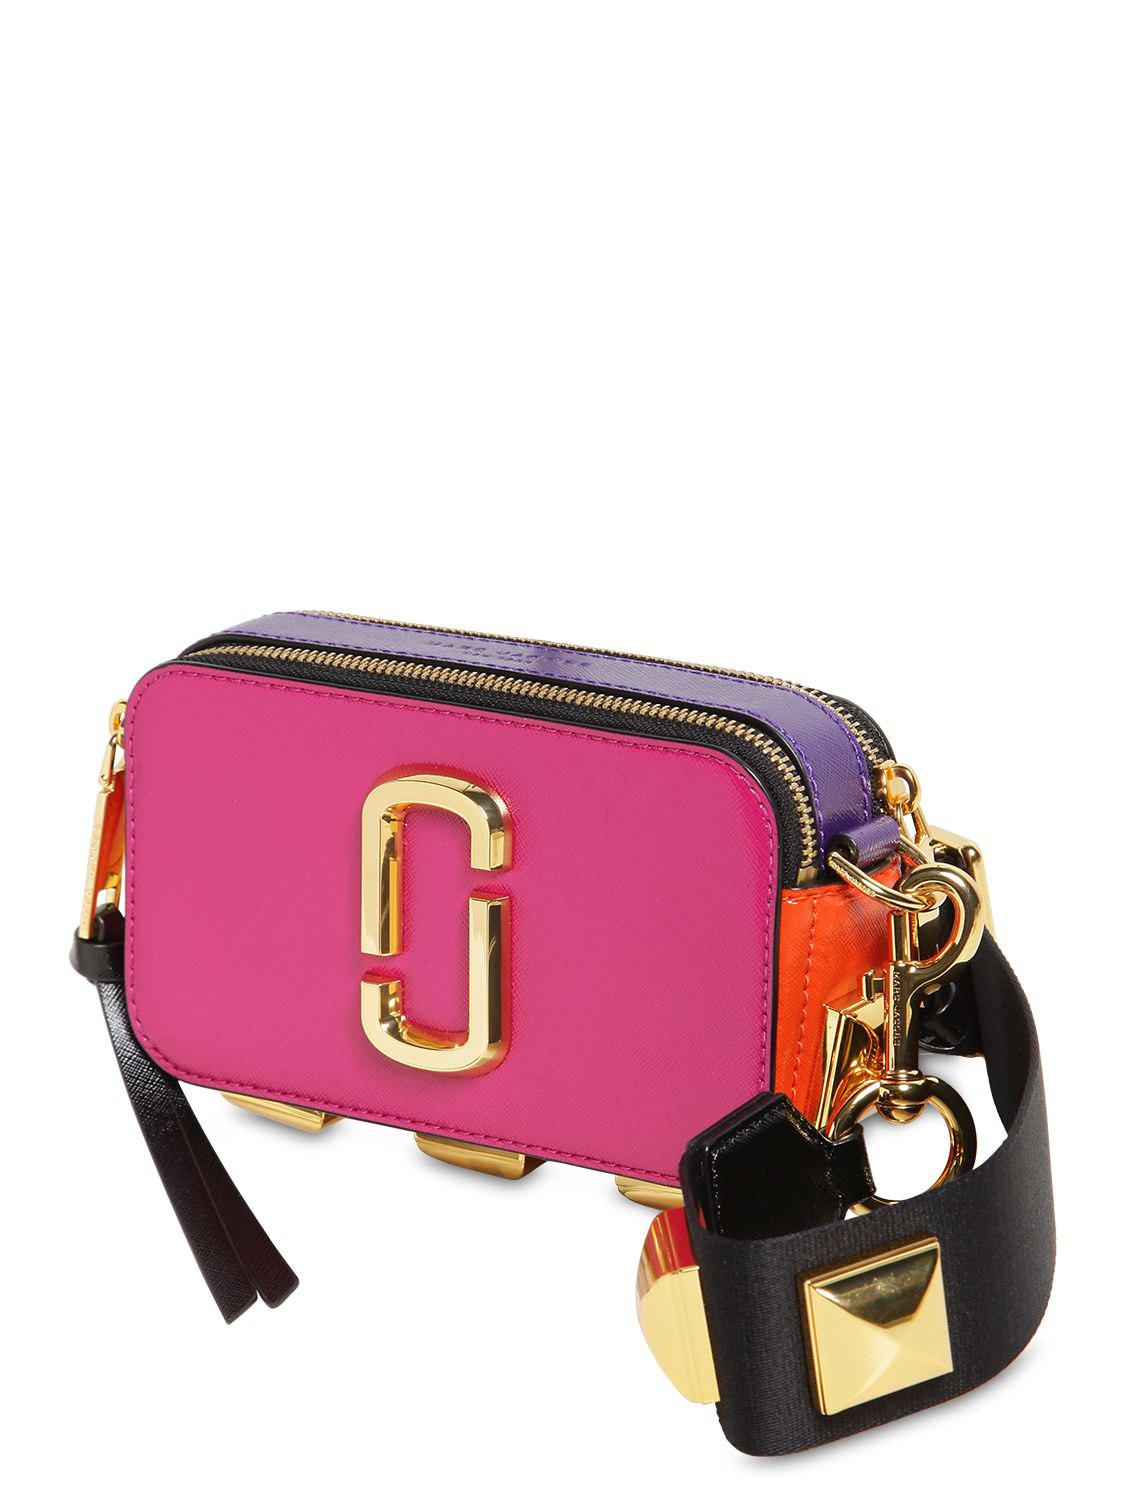 814a7cc3a4 Marc Jacobs Snapshot Studs Camera Bag In Multicolor Magenta ...